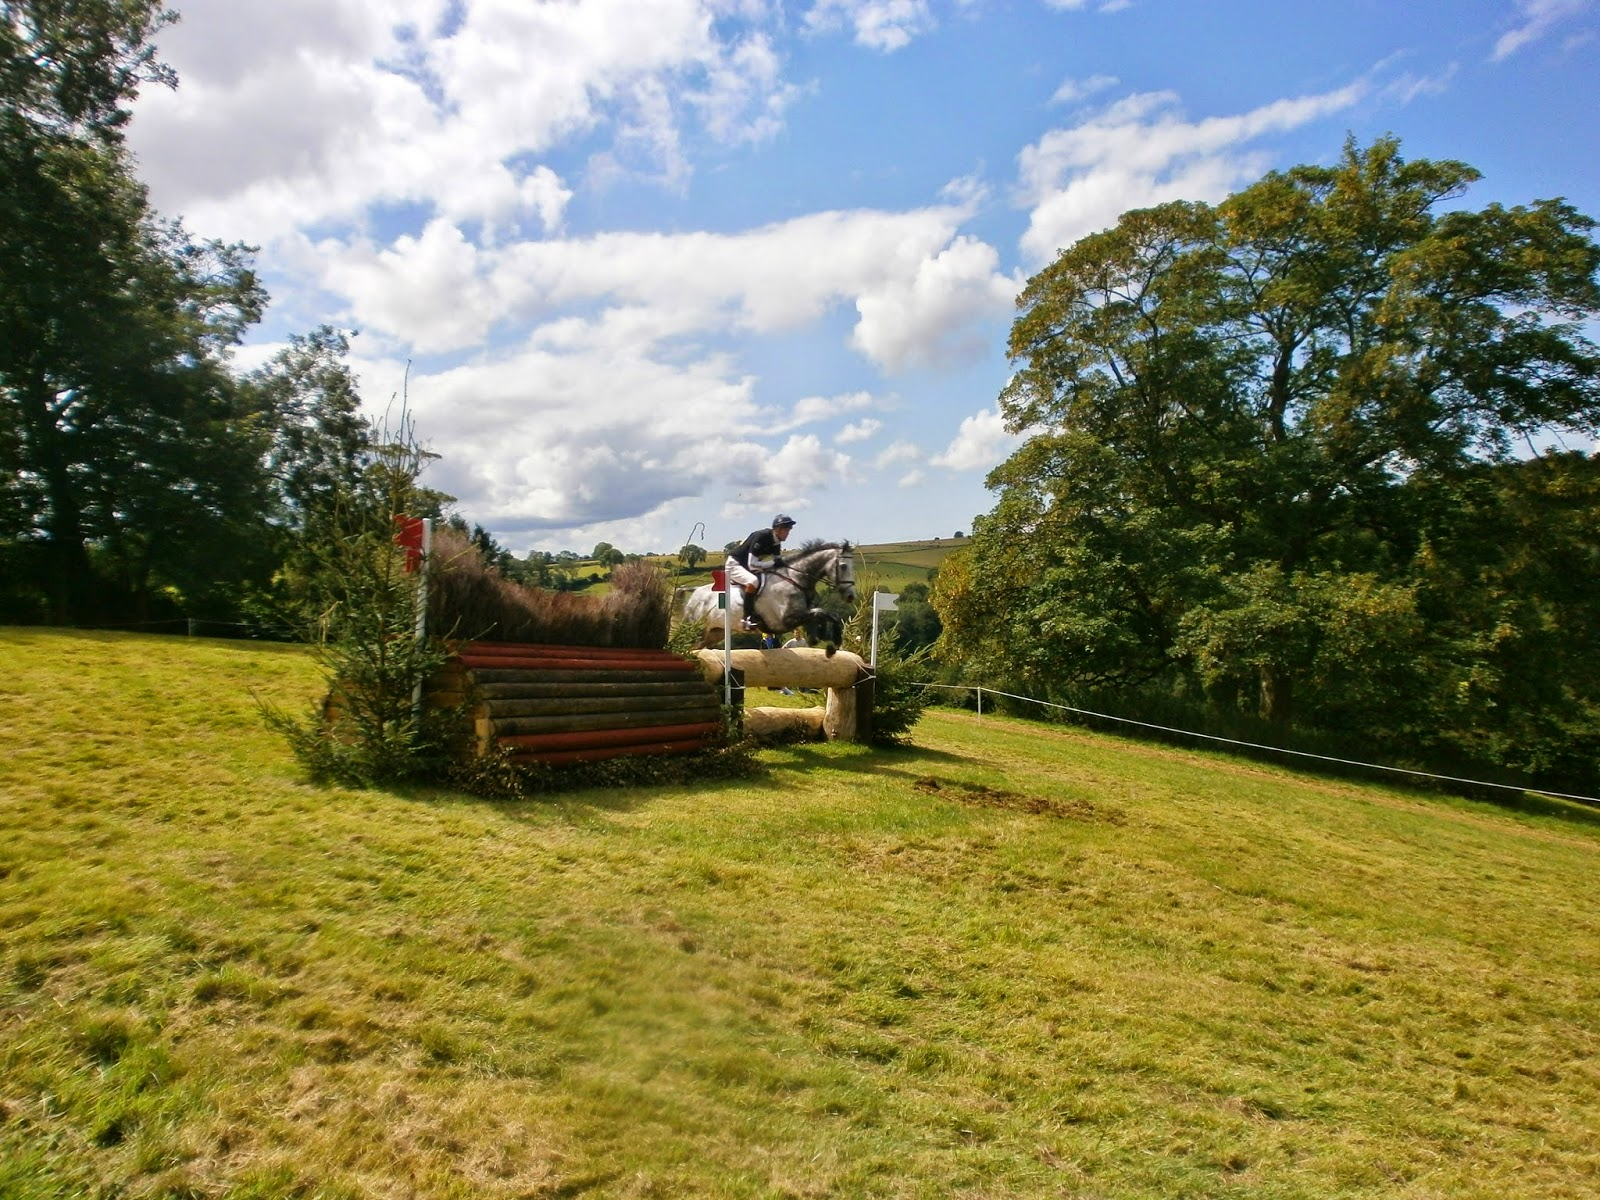 William Fox-Pitt competing at Gatcombe